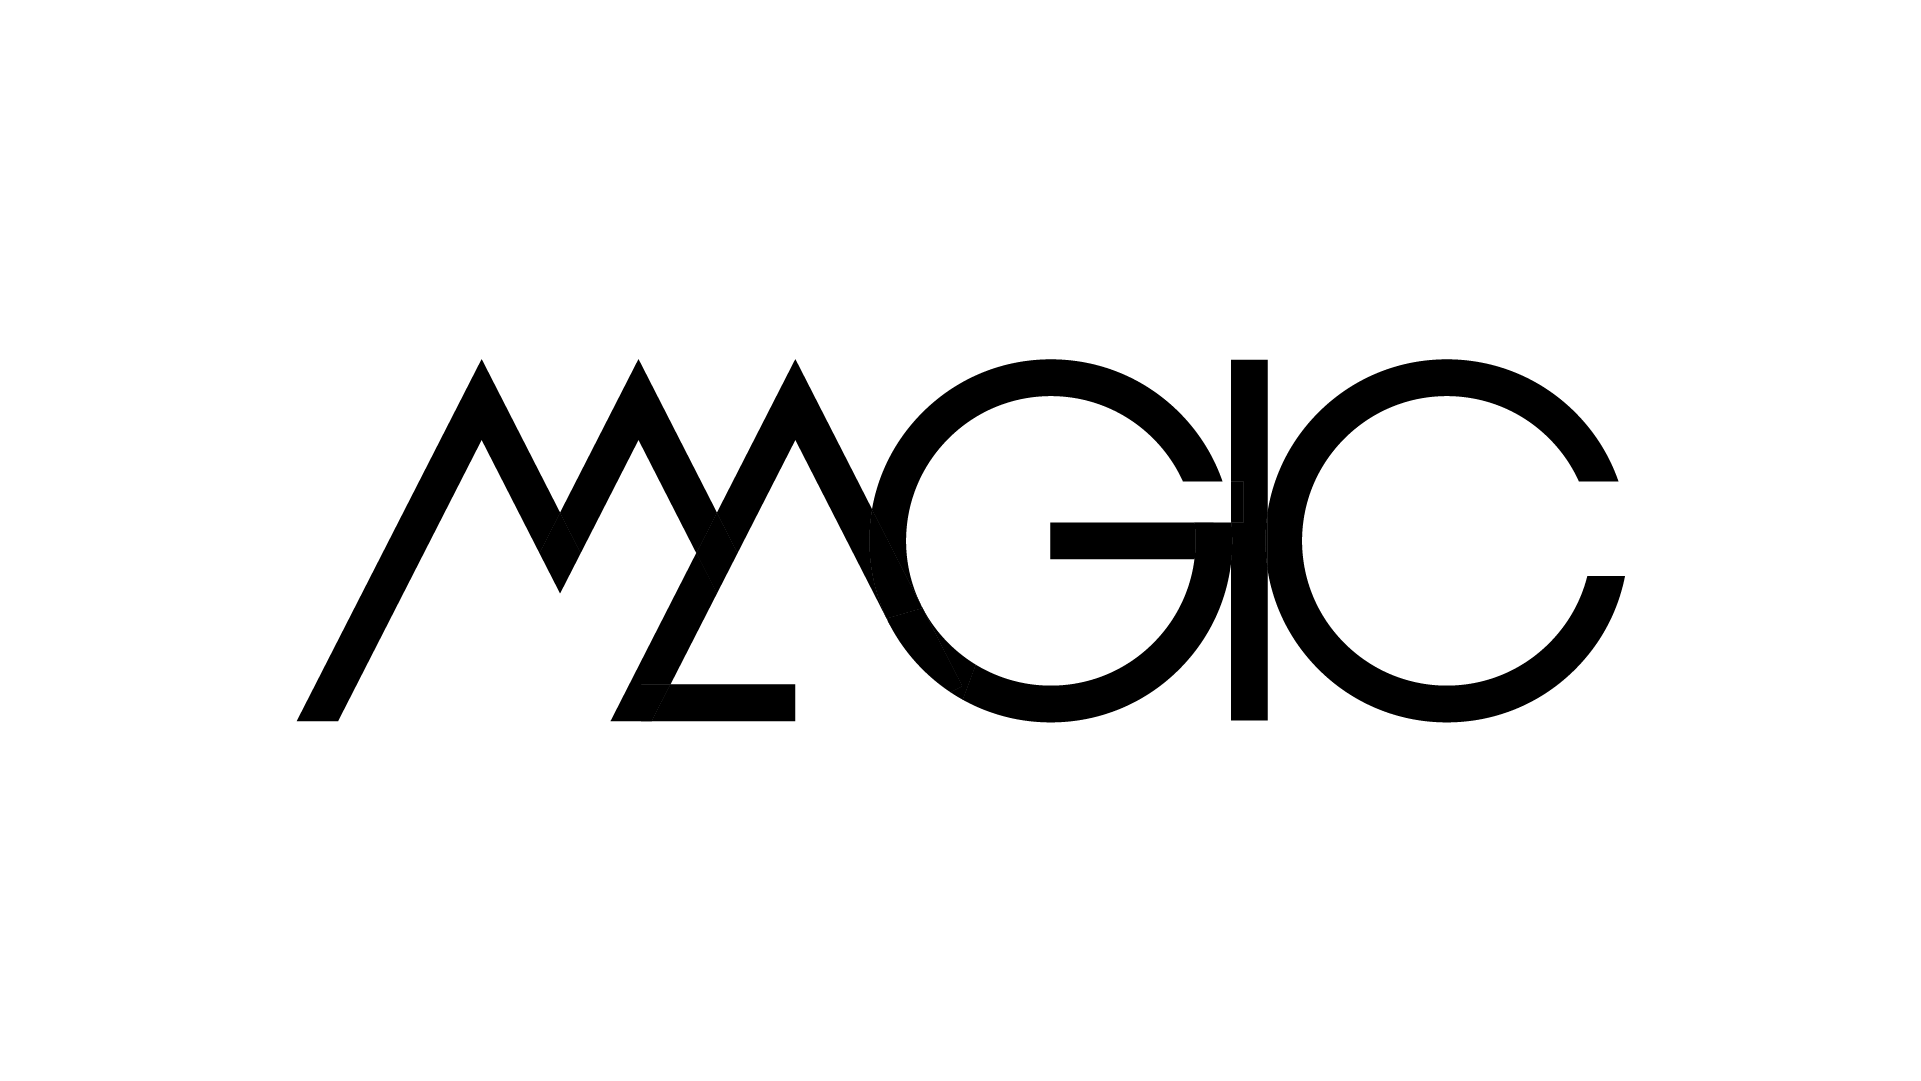 MagicNumbers_LogoType_Justin Harder_02.png